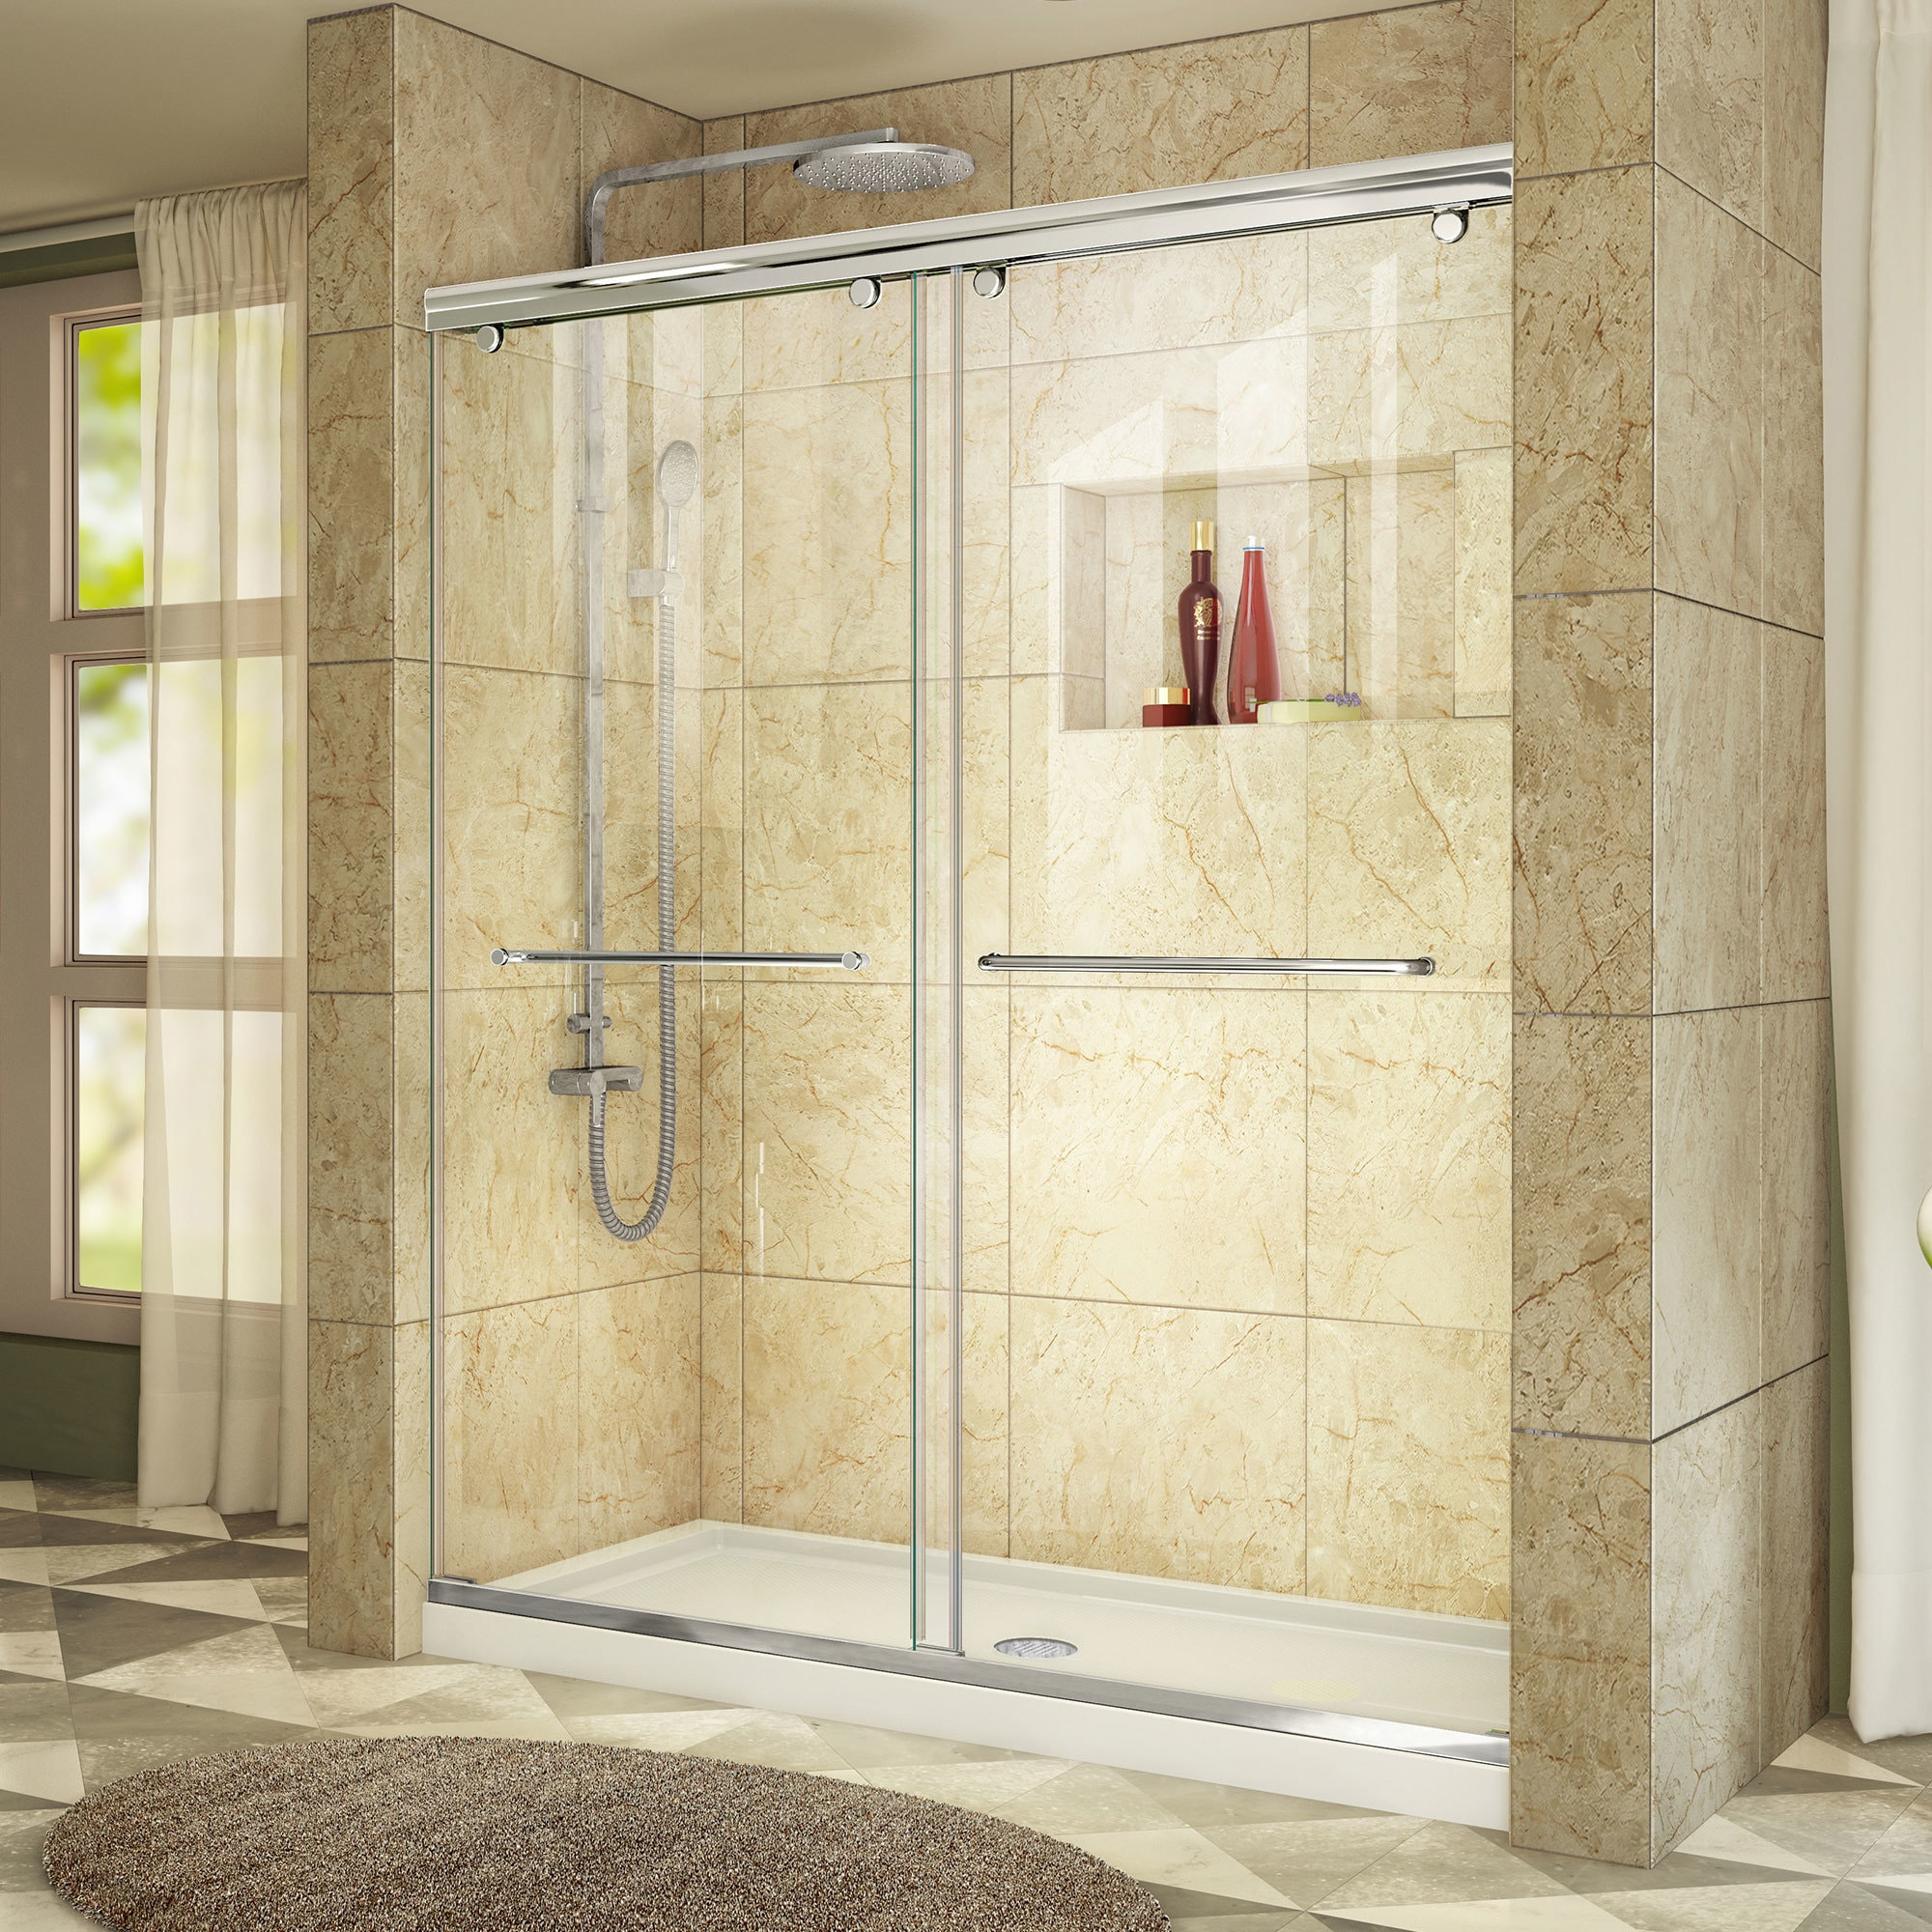 Merveilleux Shop DreamLine Charisma Bypass Sliding Shower Door And 36x60 In Shower Base    Free Shipping Today   Overstock.com   8231984